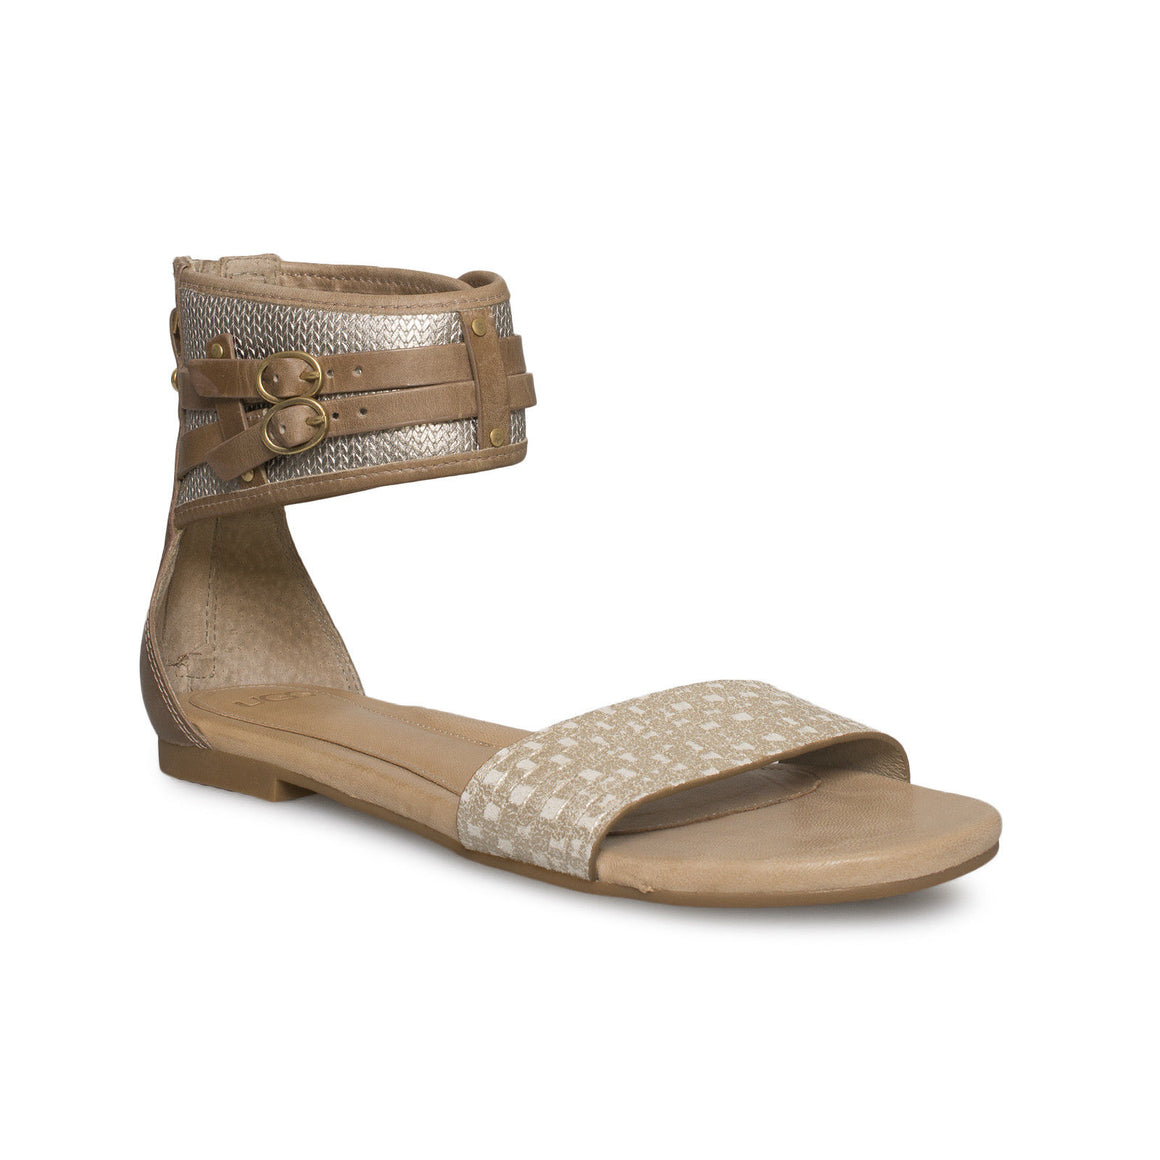 UGG Savana Metallic Soft Gold Sandals